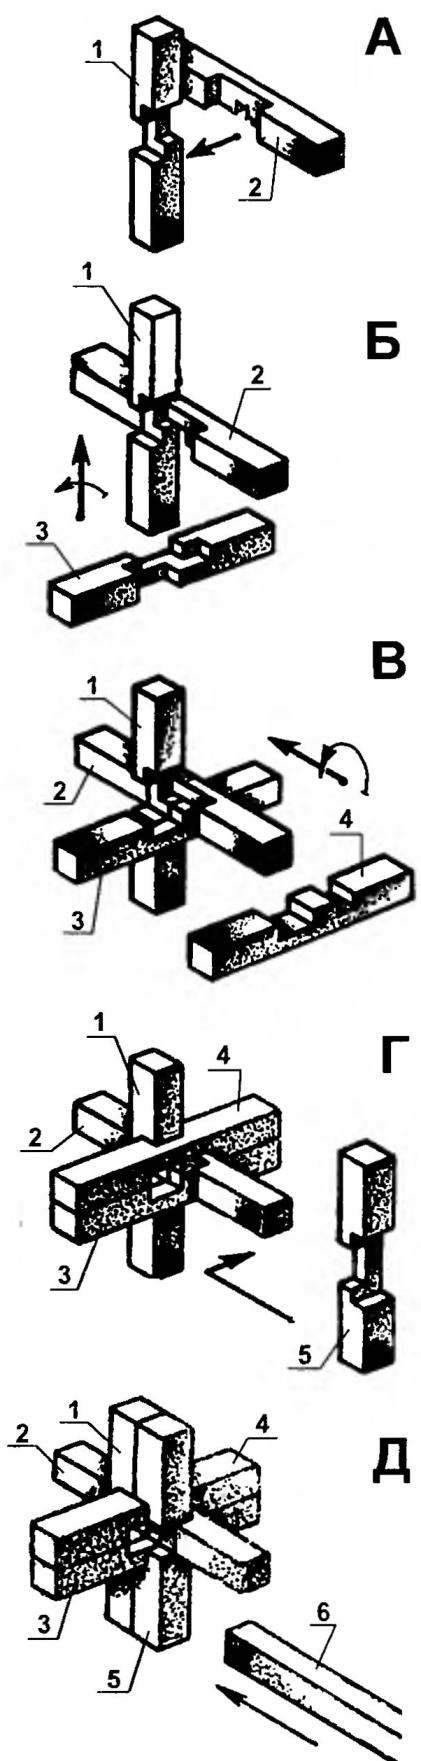 Assembly sequence puzzles